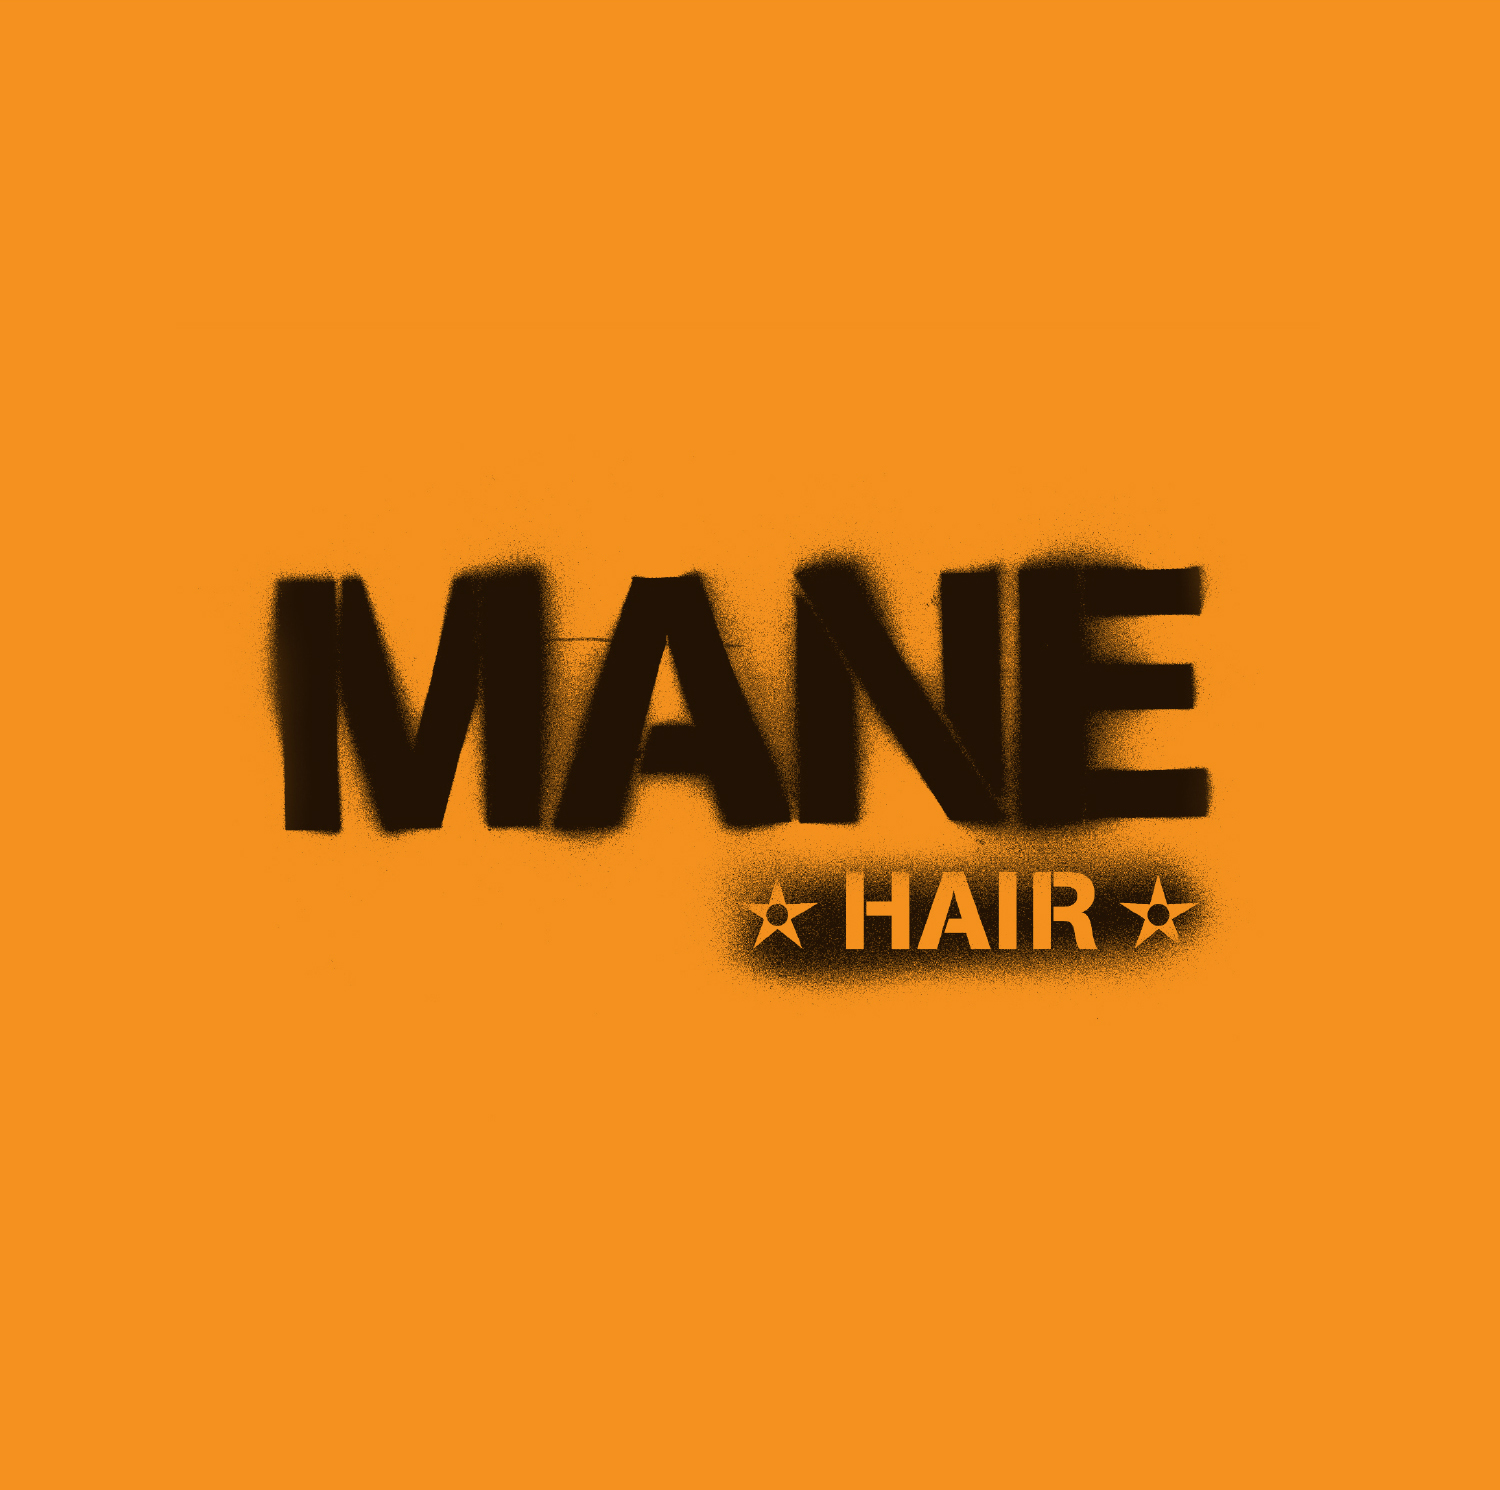 mane-hair-logo-design.jpg